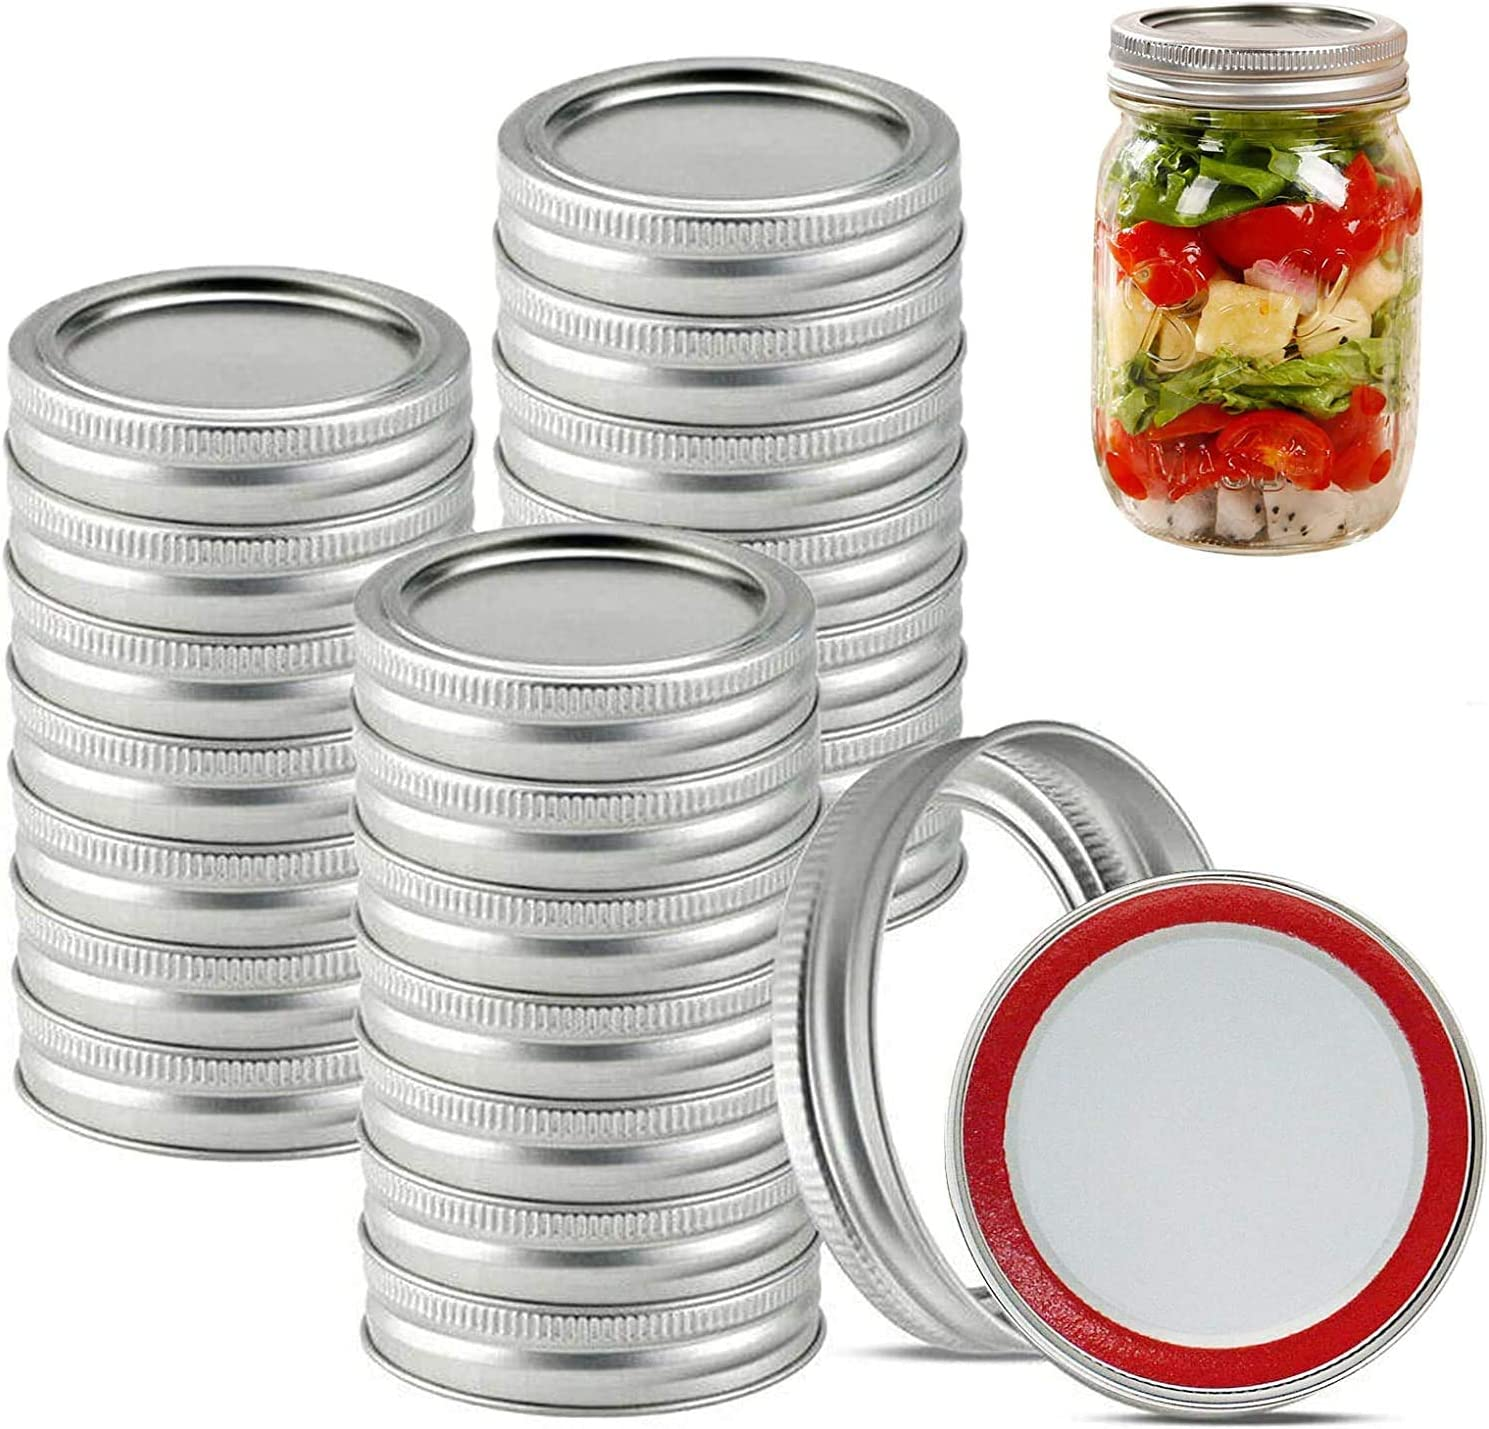 10//20pcs//set Mouth Canning Lids Bands Split-Type Leak Proof For Jar Canning Lids